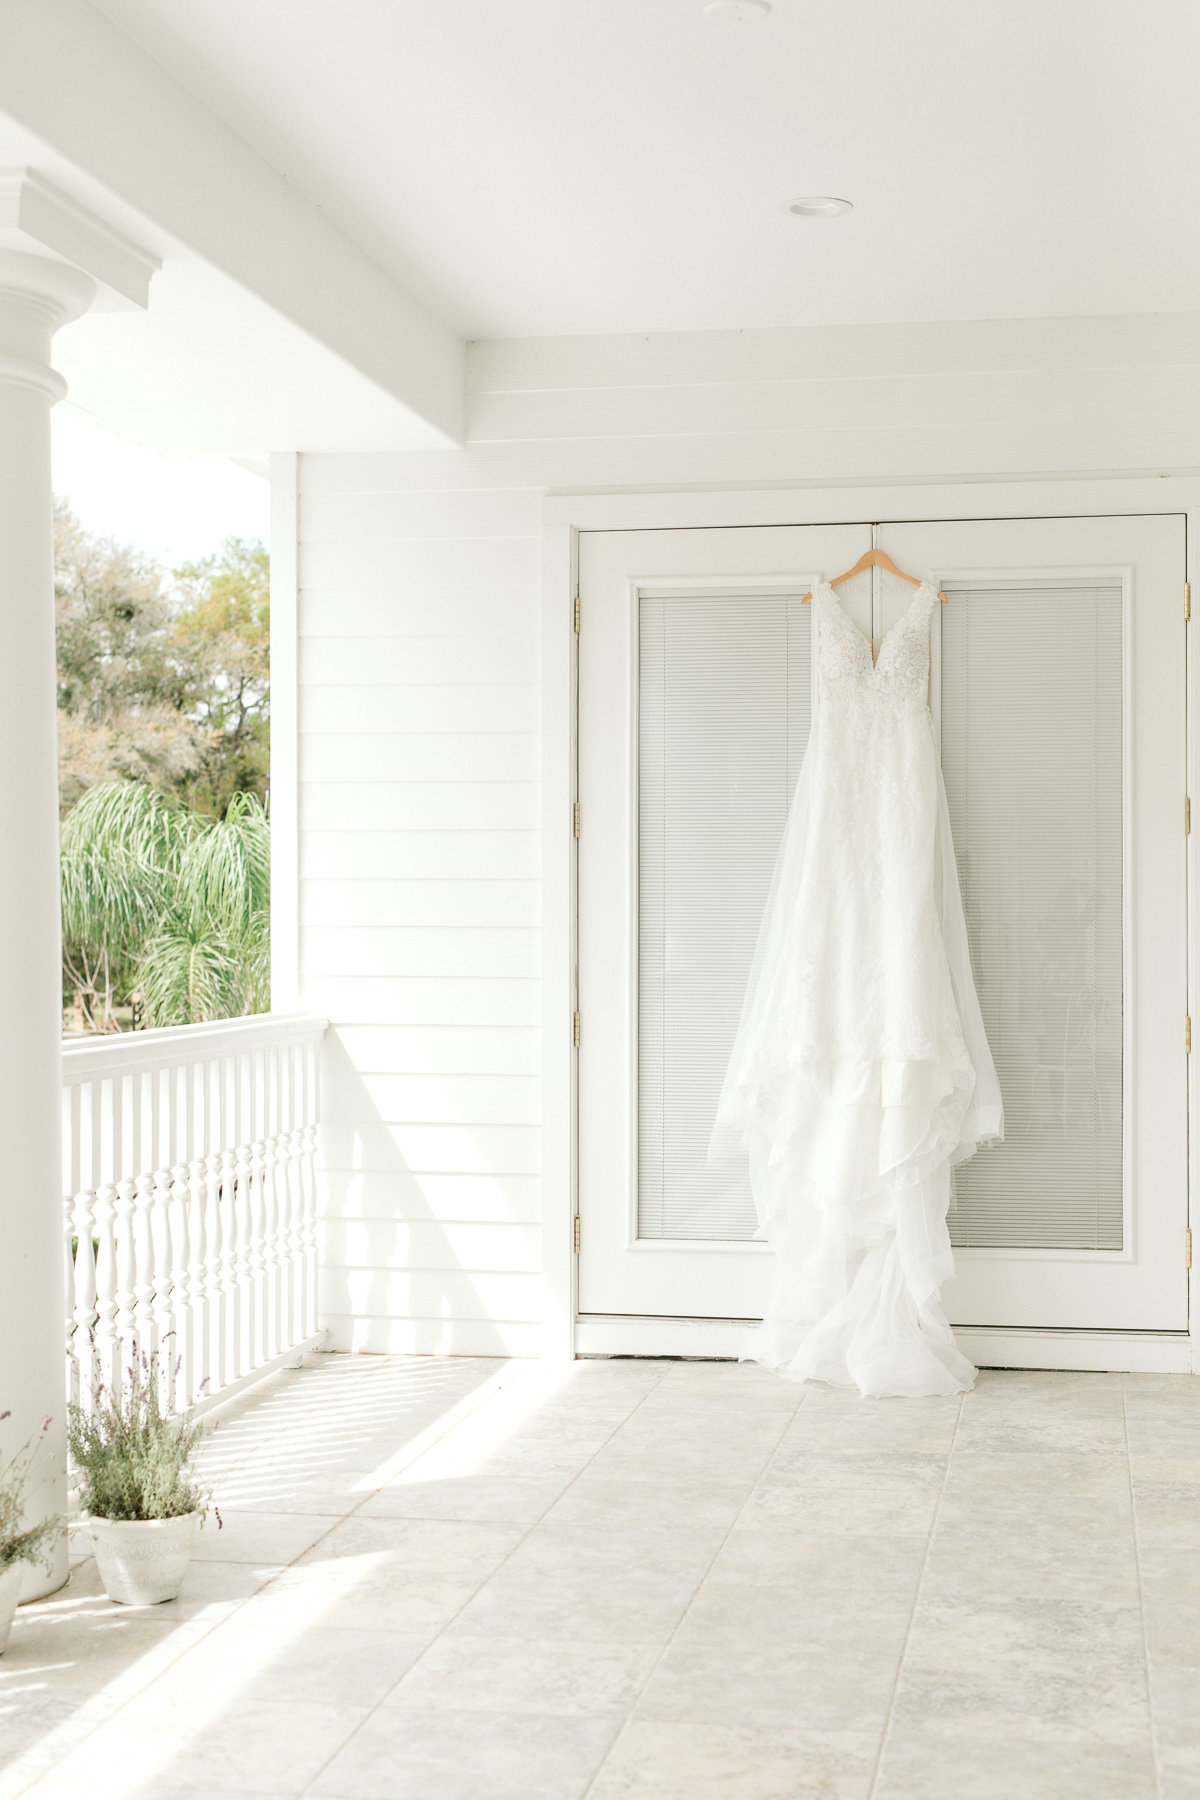 wedding dress hanging on balcony